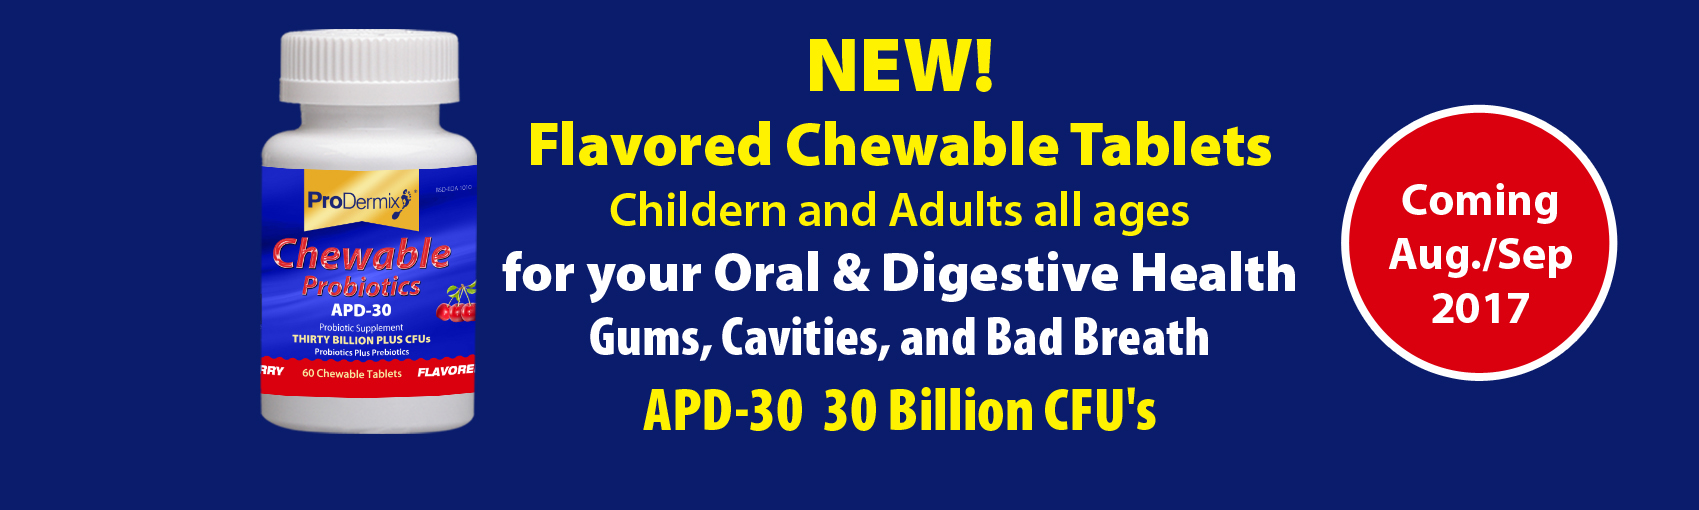 New Chewable Tablets